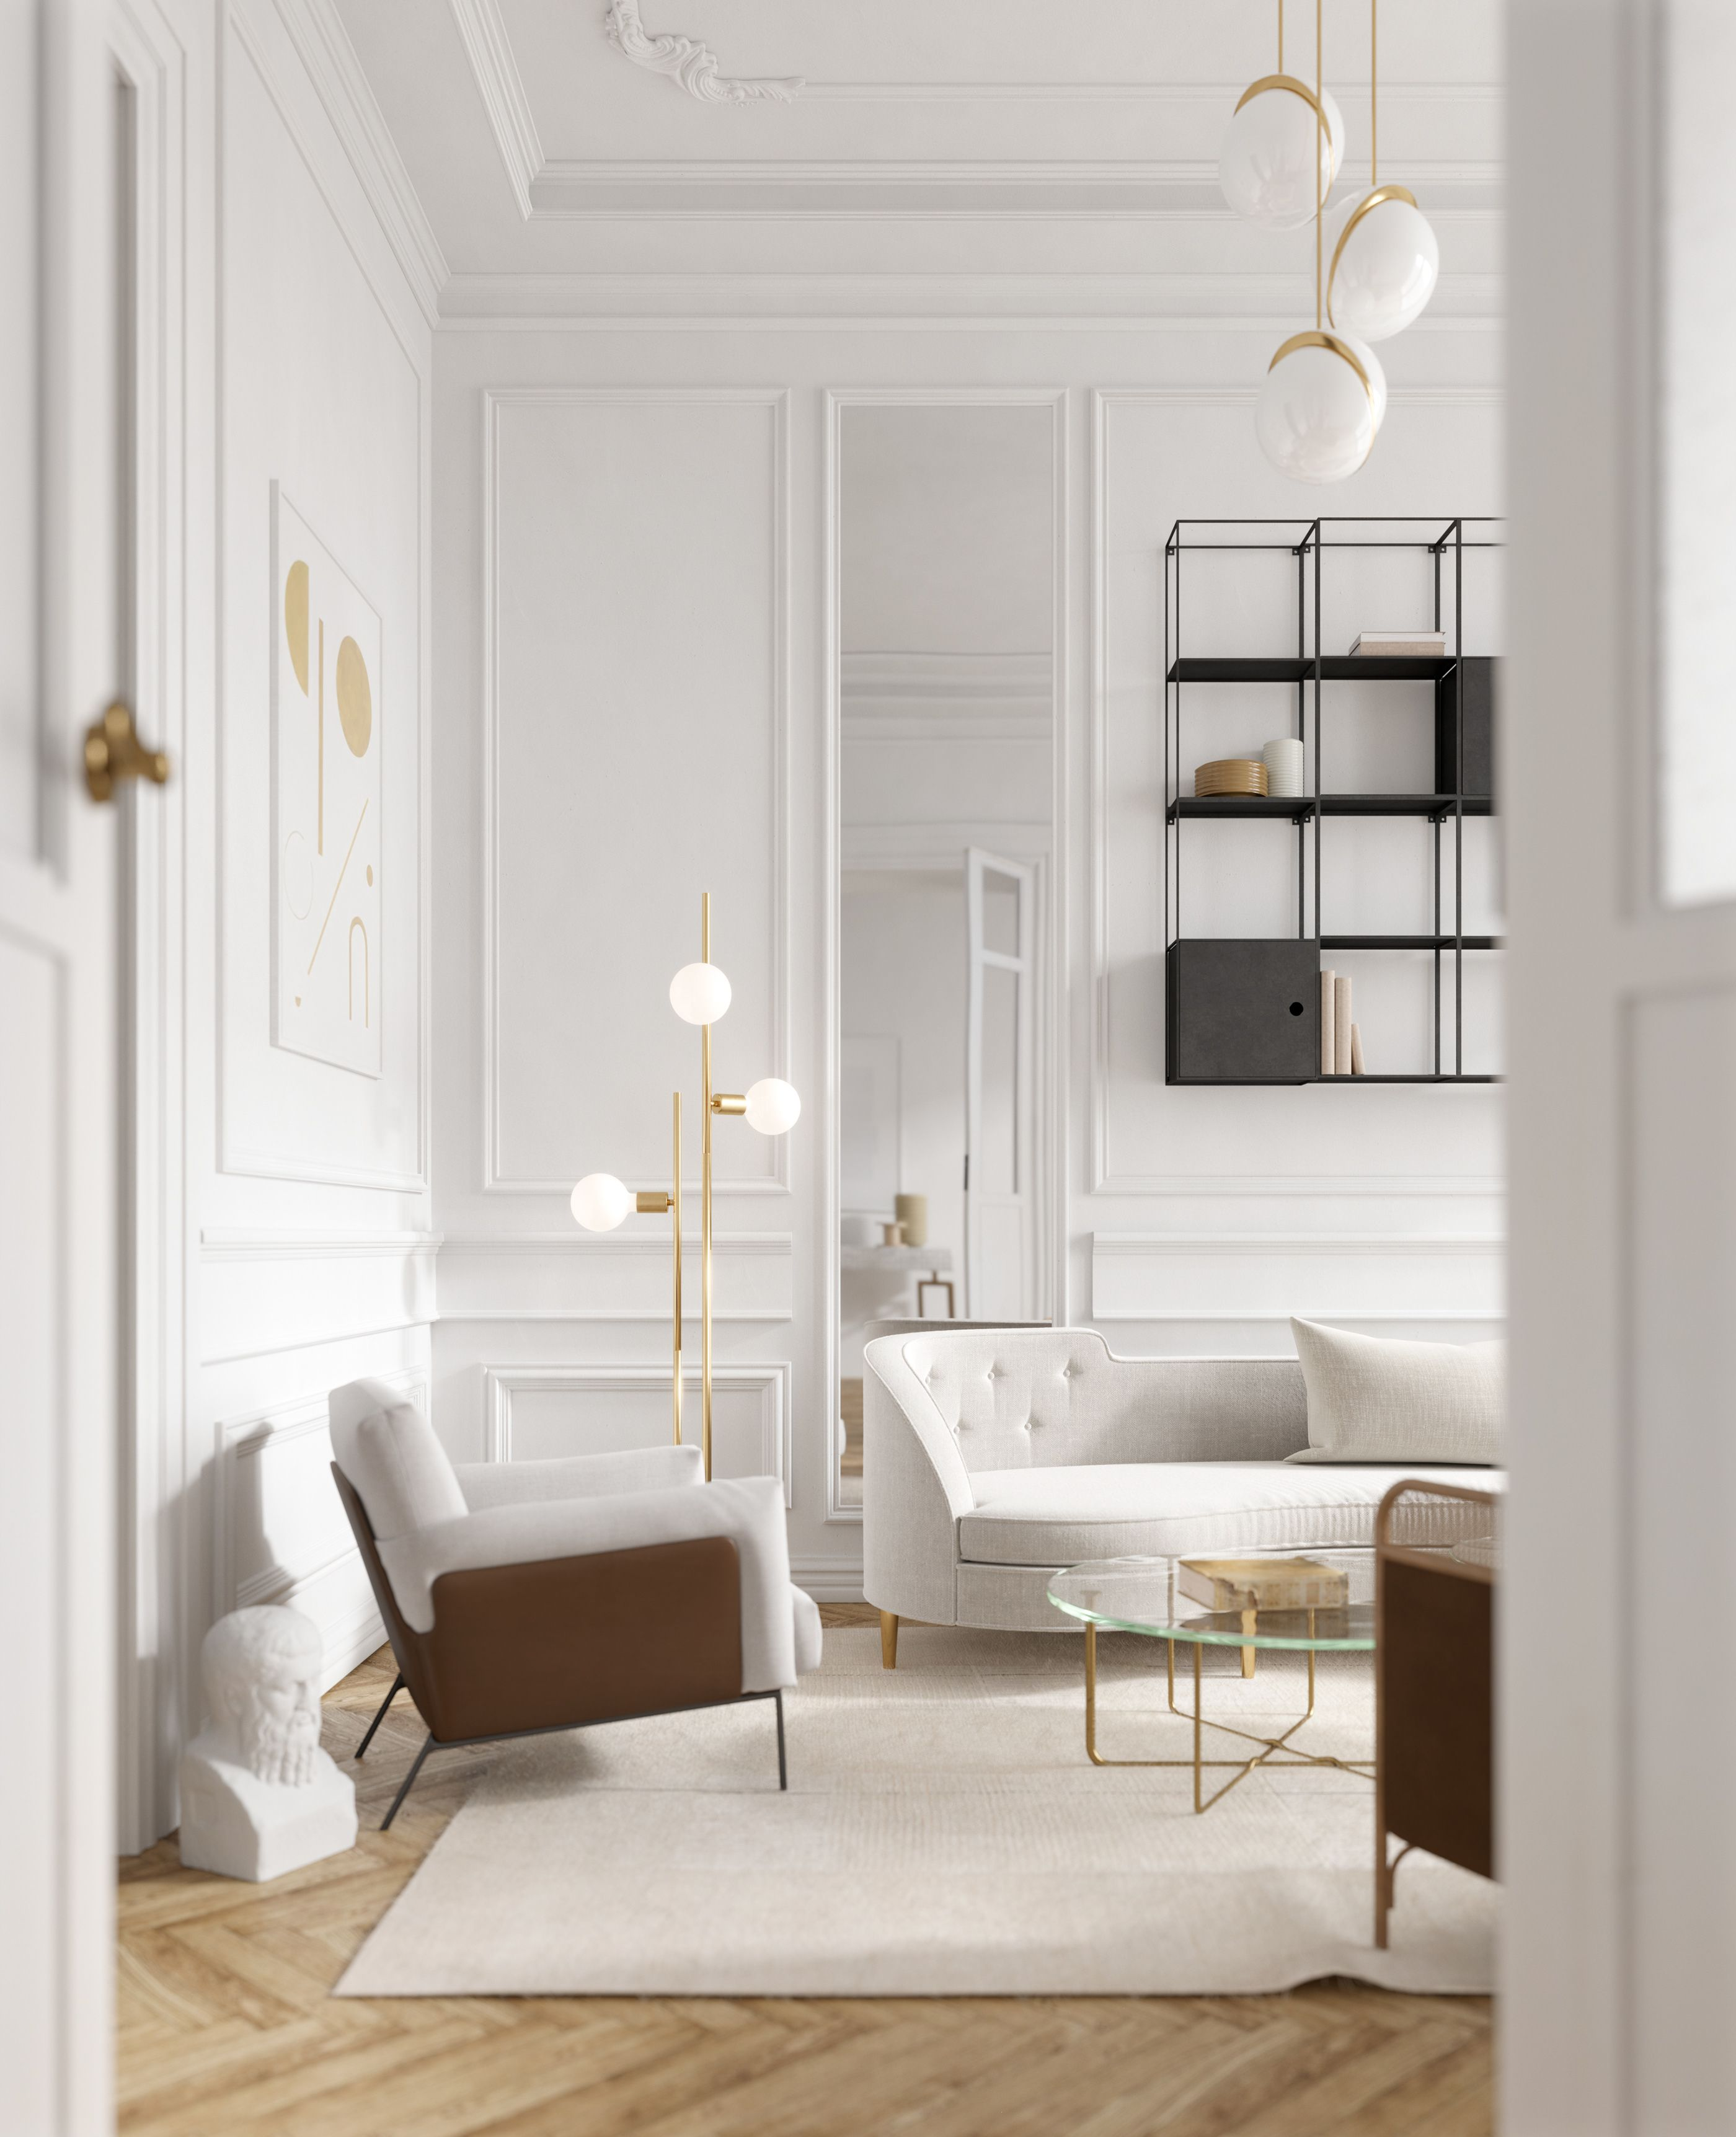 Living Decor White Gold Grey Brown On Behance With